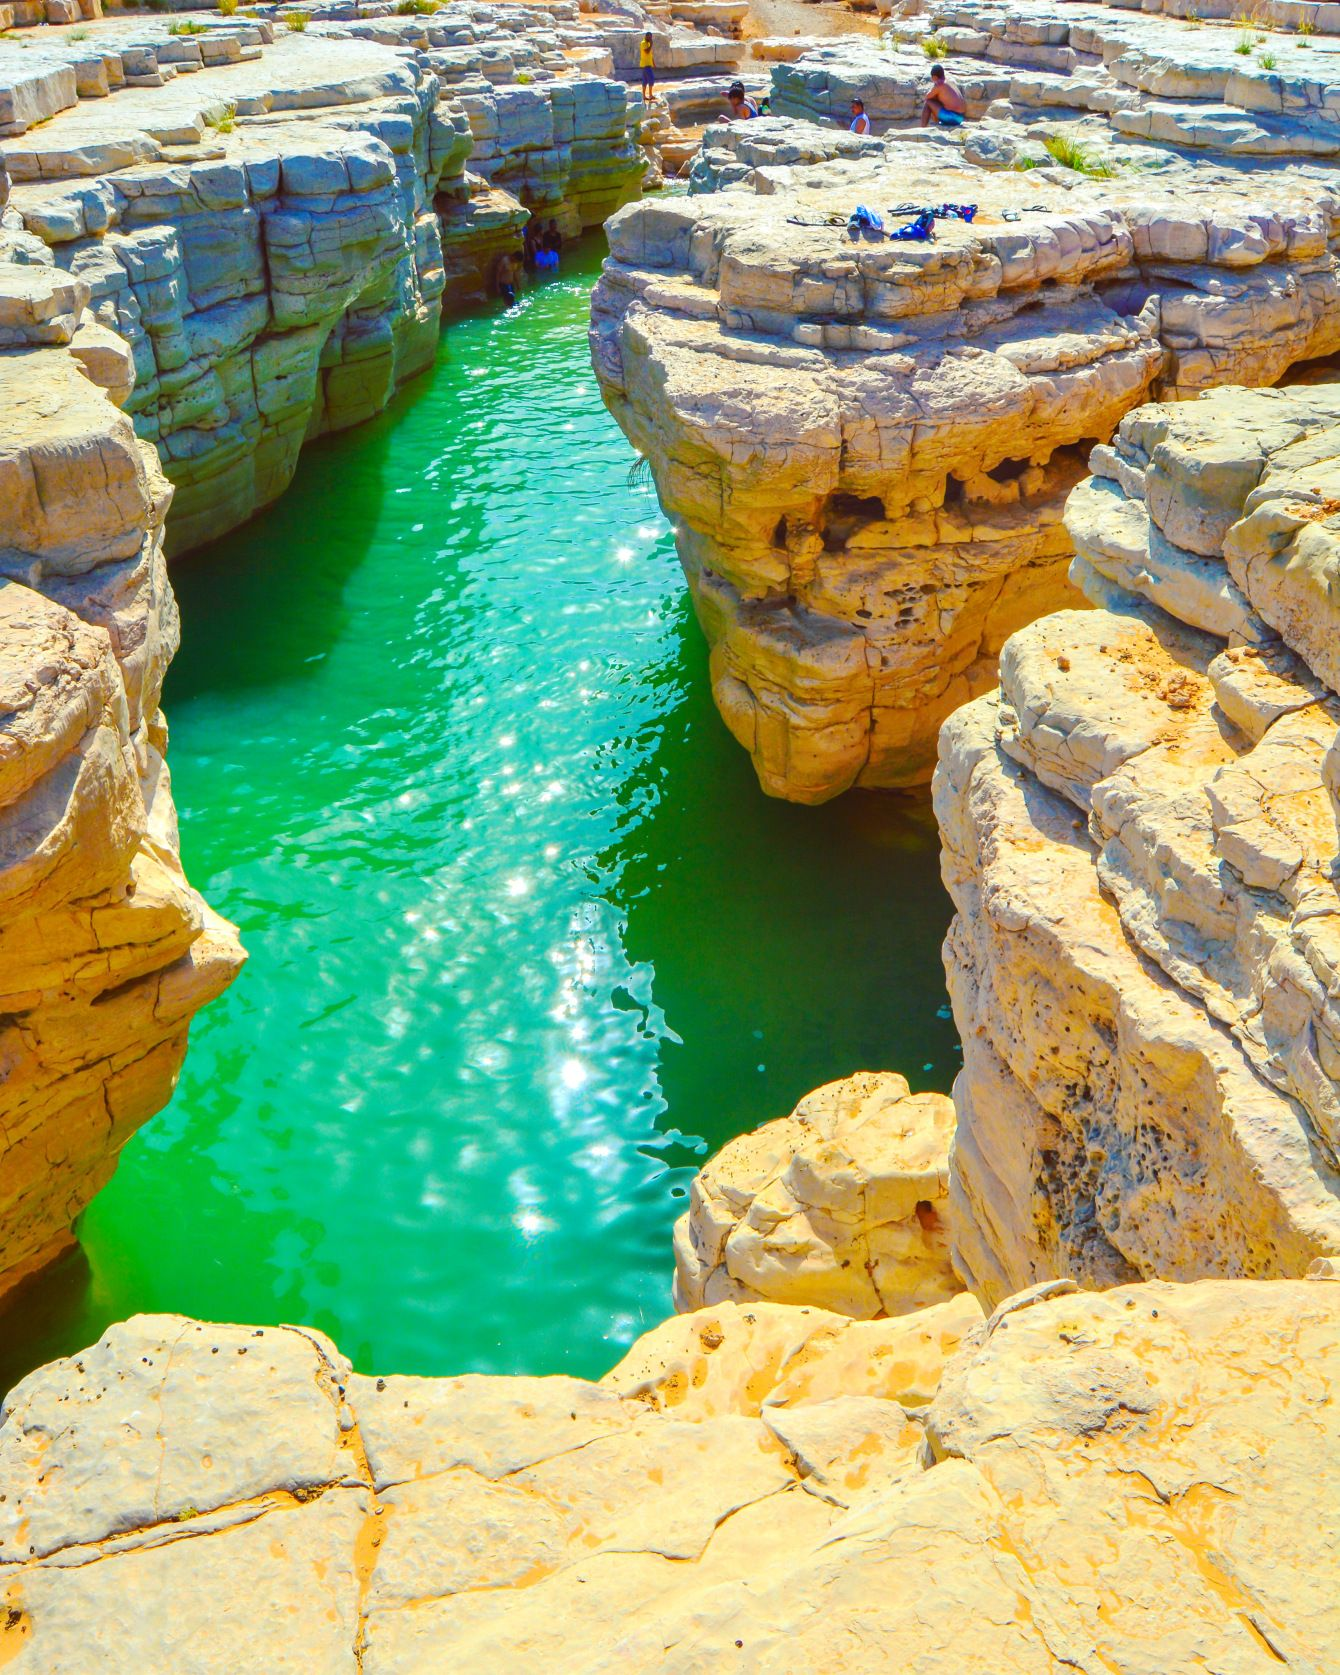 Take A Peek At Riyadh S New Tourism Gem The Hidden Canyon Vantagepoint Cool Places To Visit Riyadh Tourism